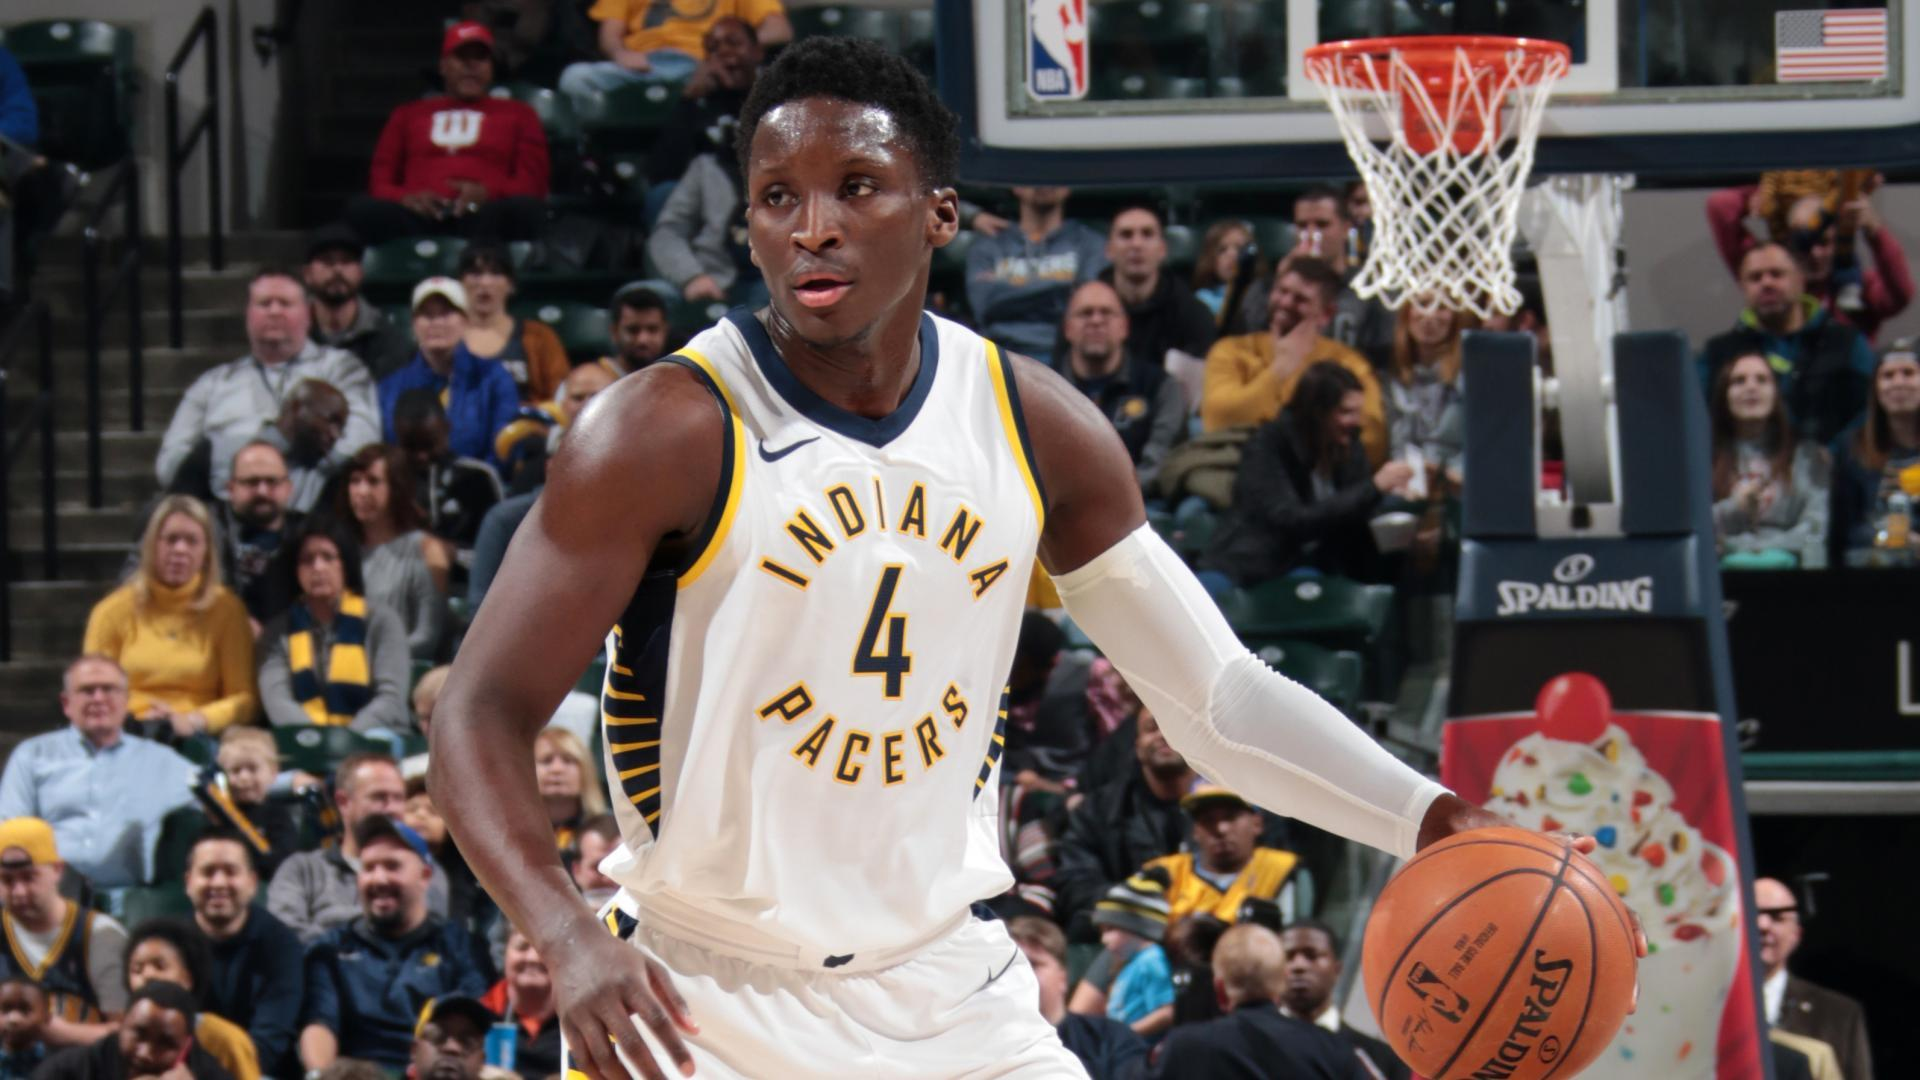 Oladipo explodes for 47 points to lead Pacers past Nuggets in OT